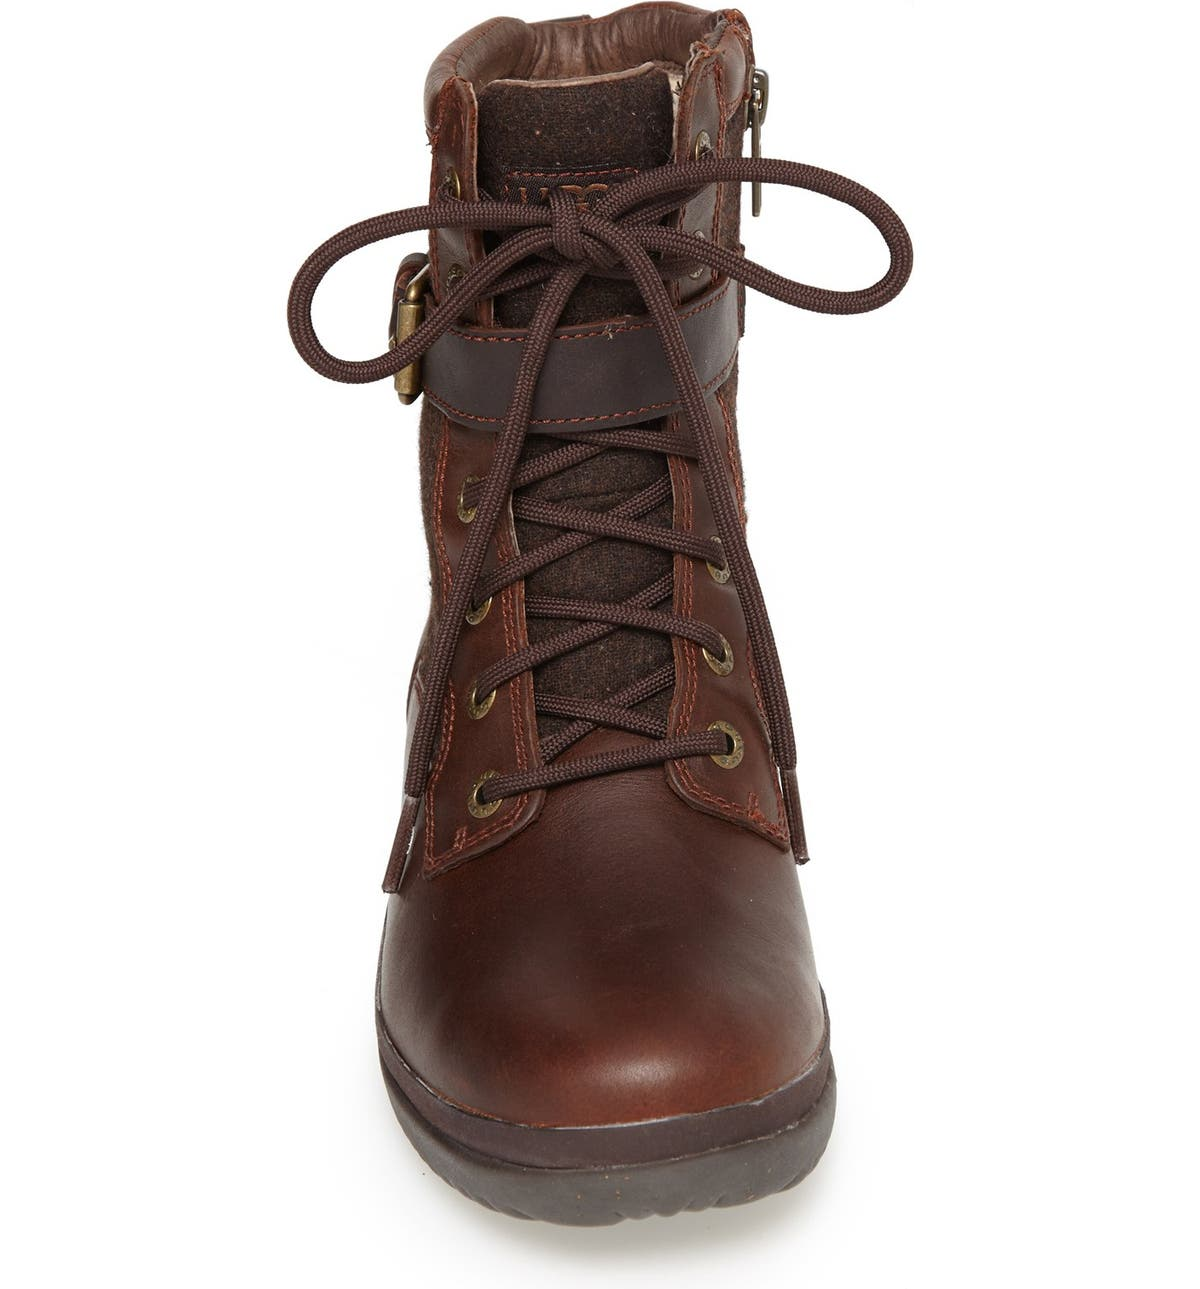 accdc5442b3 Kesey Waterproof Boot